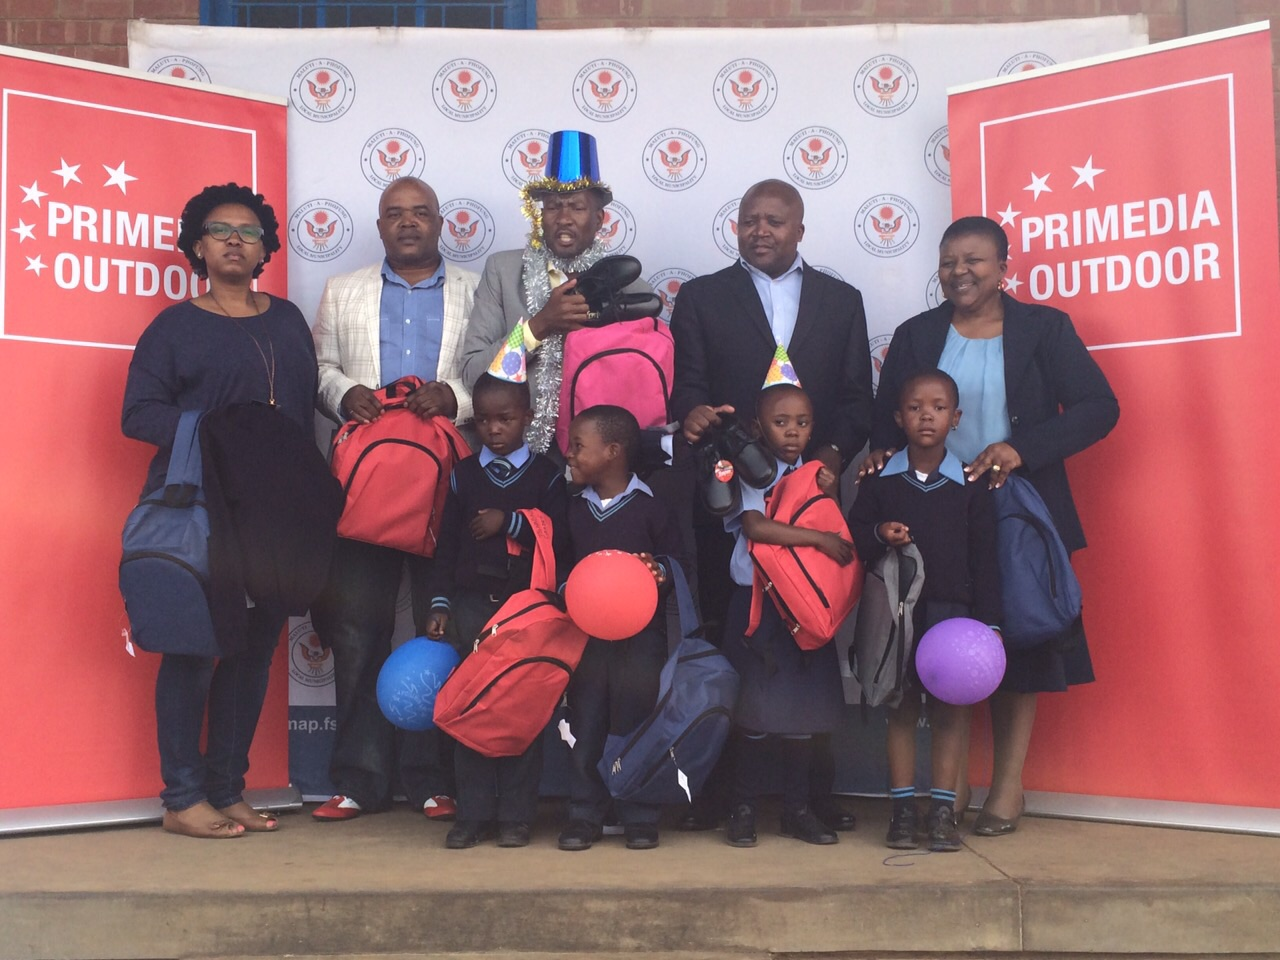 THE Maluti-a-Phofung Local Municipality's executive mayor, Vusi Tshabalala (middle), with representatives of Primedia Outdoor, the principal of the Sentebale Primary School and some of the beneficiaries. From the left are, front: Kanva Moloi, Karabo Xaba, Pontsho Dlamini, Ntsebeng Koma, Thato Hamaduna, Lebohang Mokubung and Montsheng Kgatla; back: Silindile Mafukleka (marketing services strategist, Primedia Outdoor), Simphiwe Sgongwe (account manager: development, Primedia Outdoor), Tshabalala,